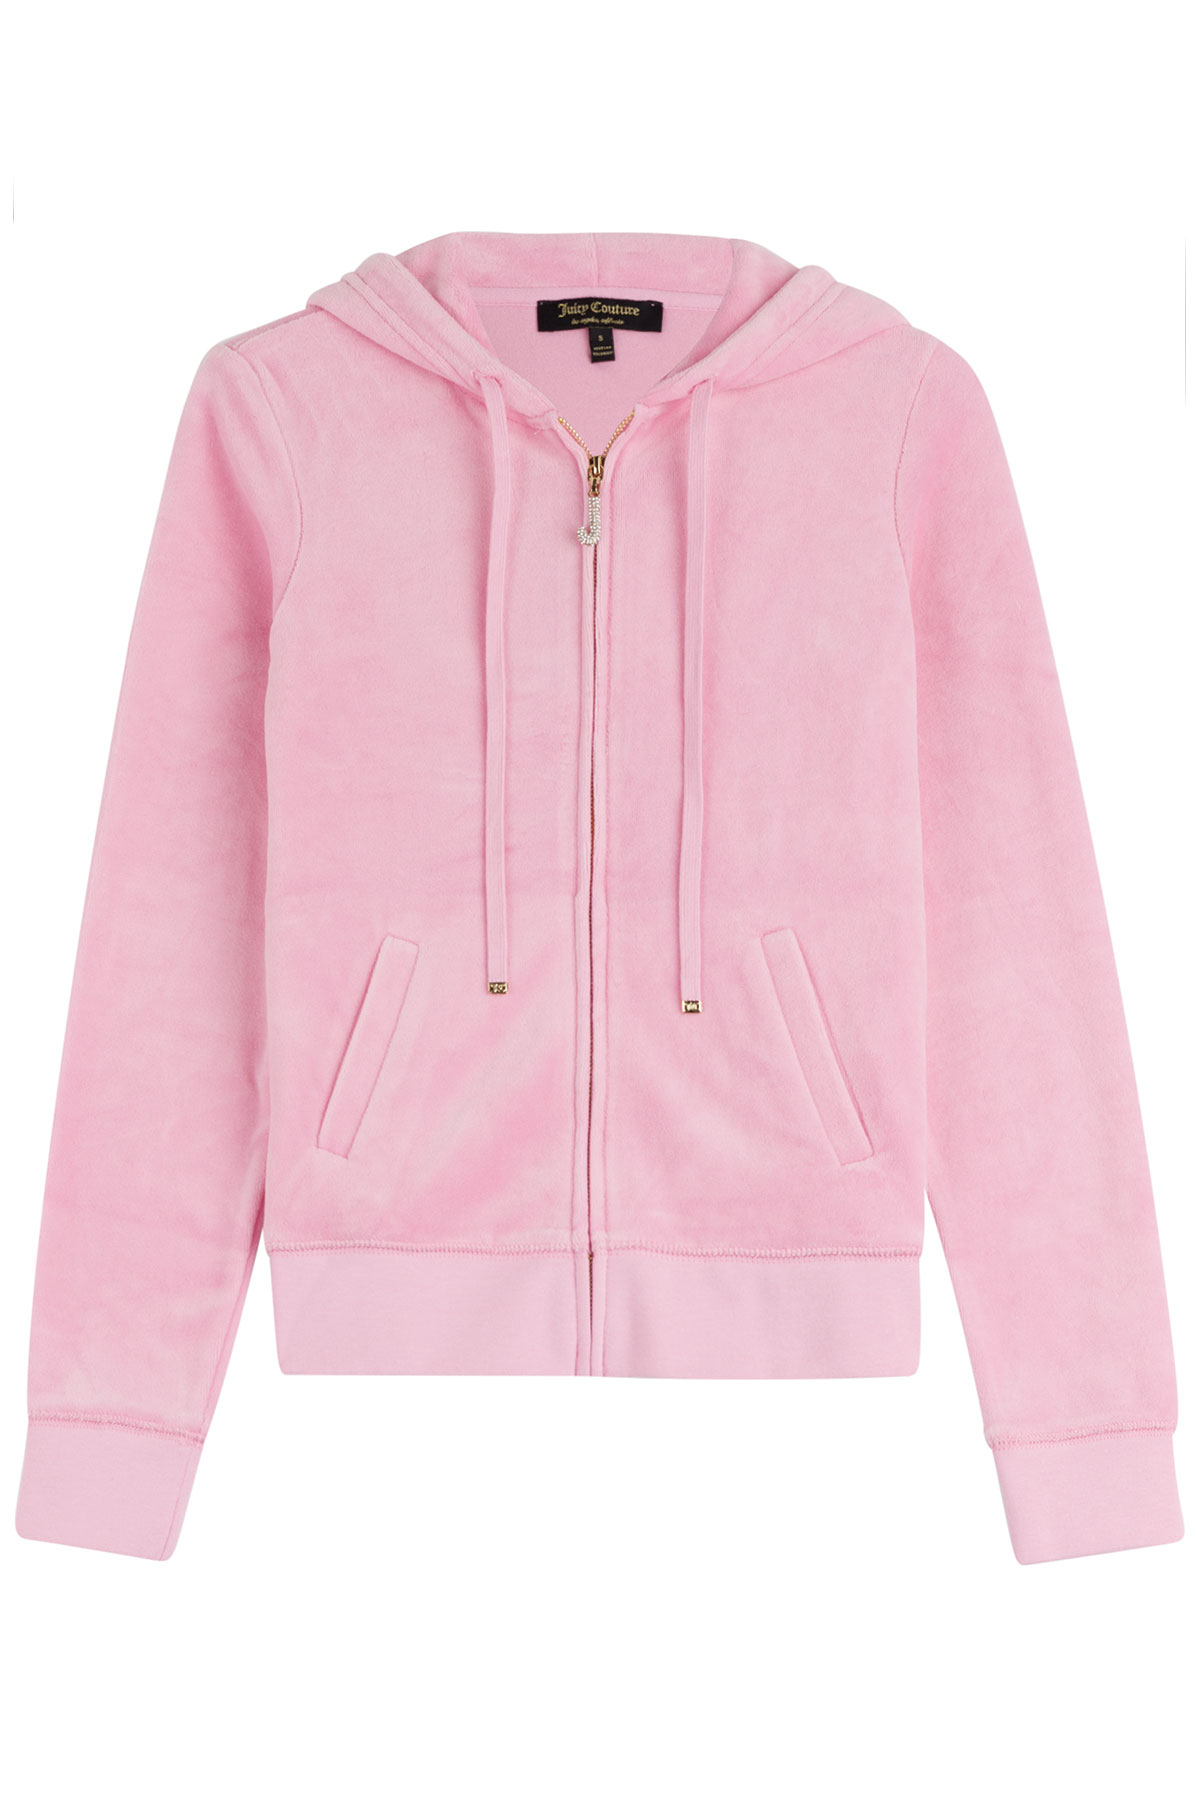 e0af80f1bf Lyst - Juicy Couture J Bling Velour Hoodie - Rose in Pink